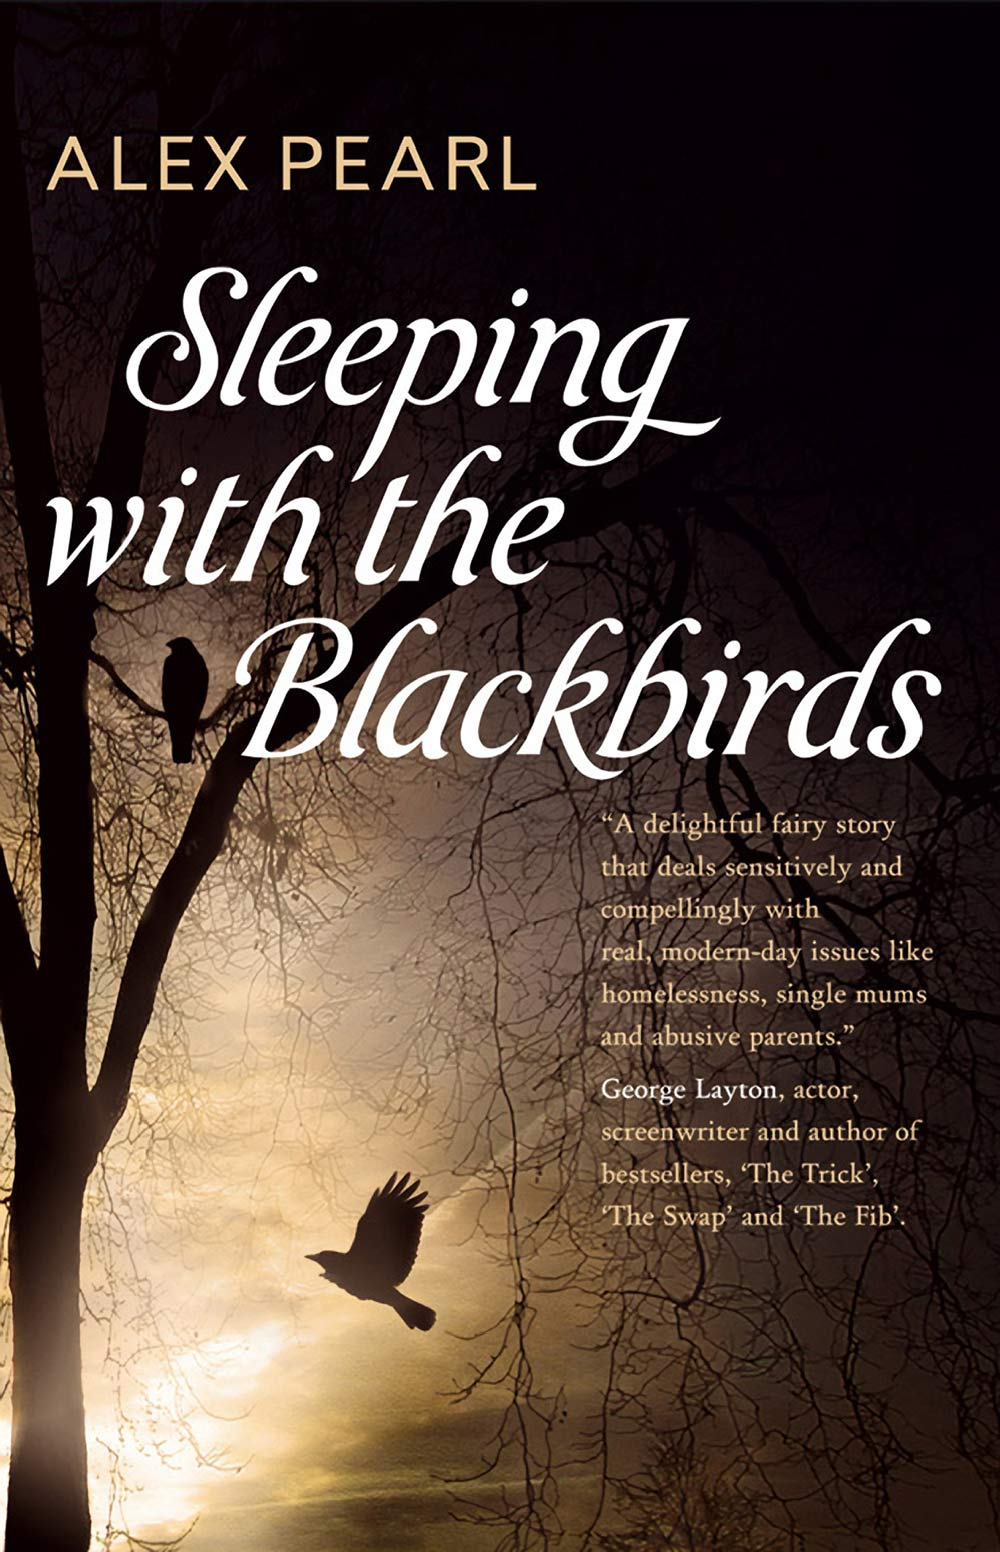 Sleeping with Blackbirds by Alex Pearl